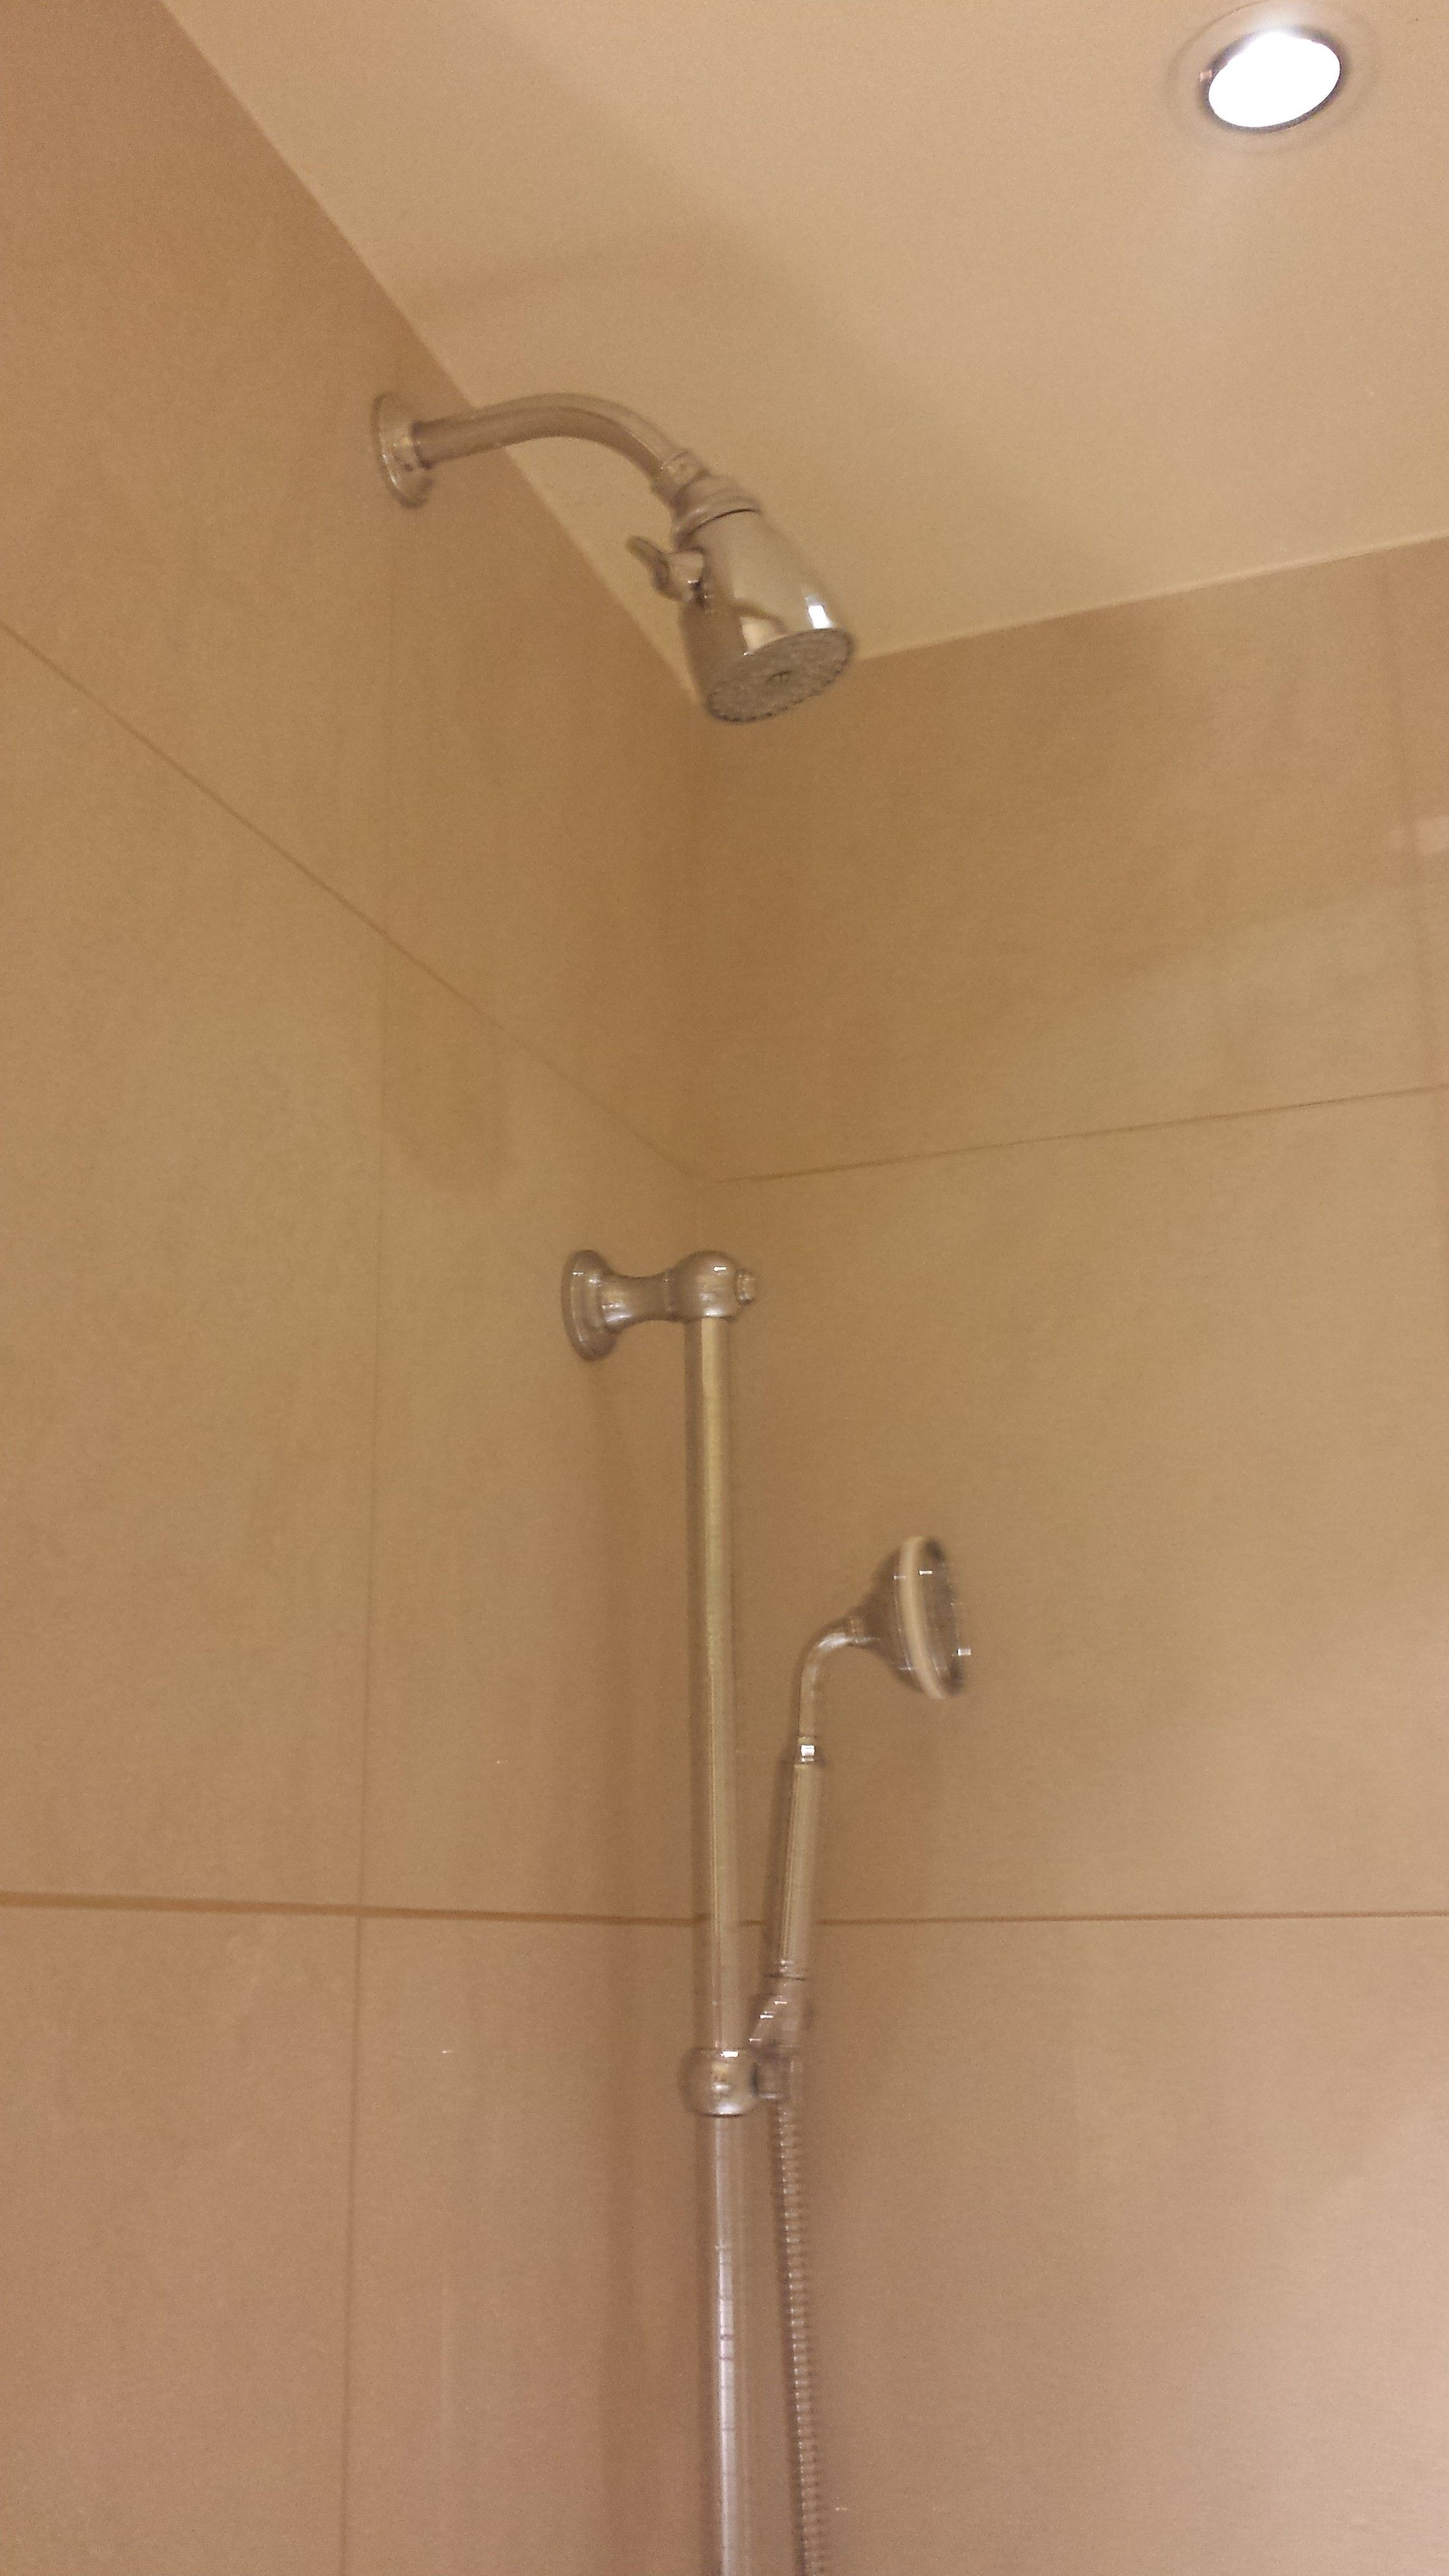 Showerhead Is High For Tall People We Want To Tile All The Way To